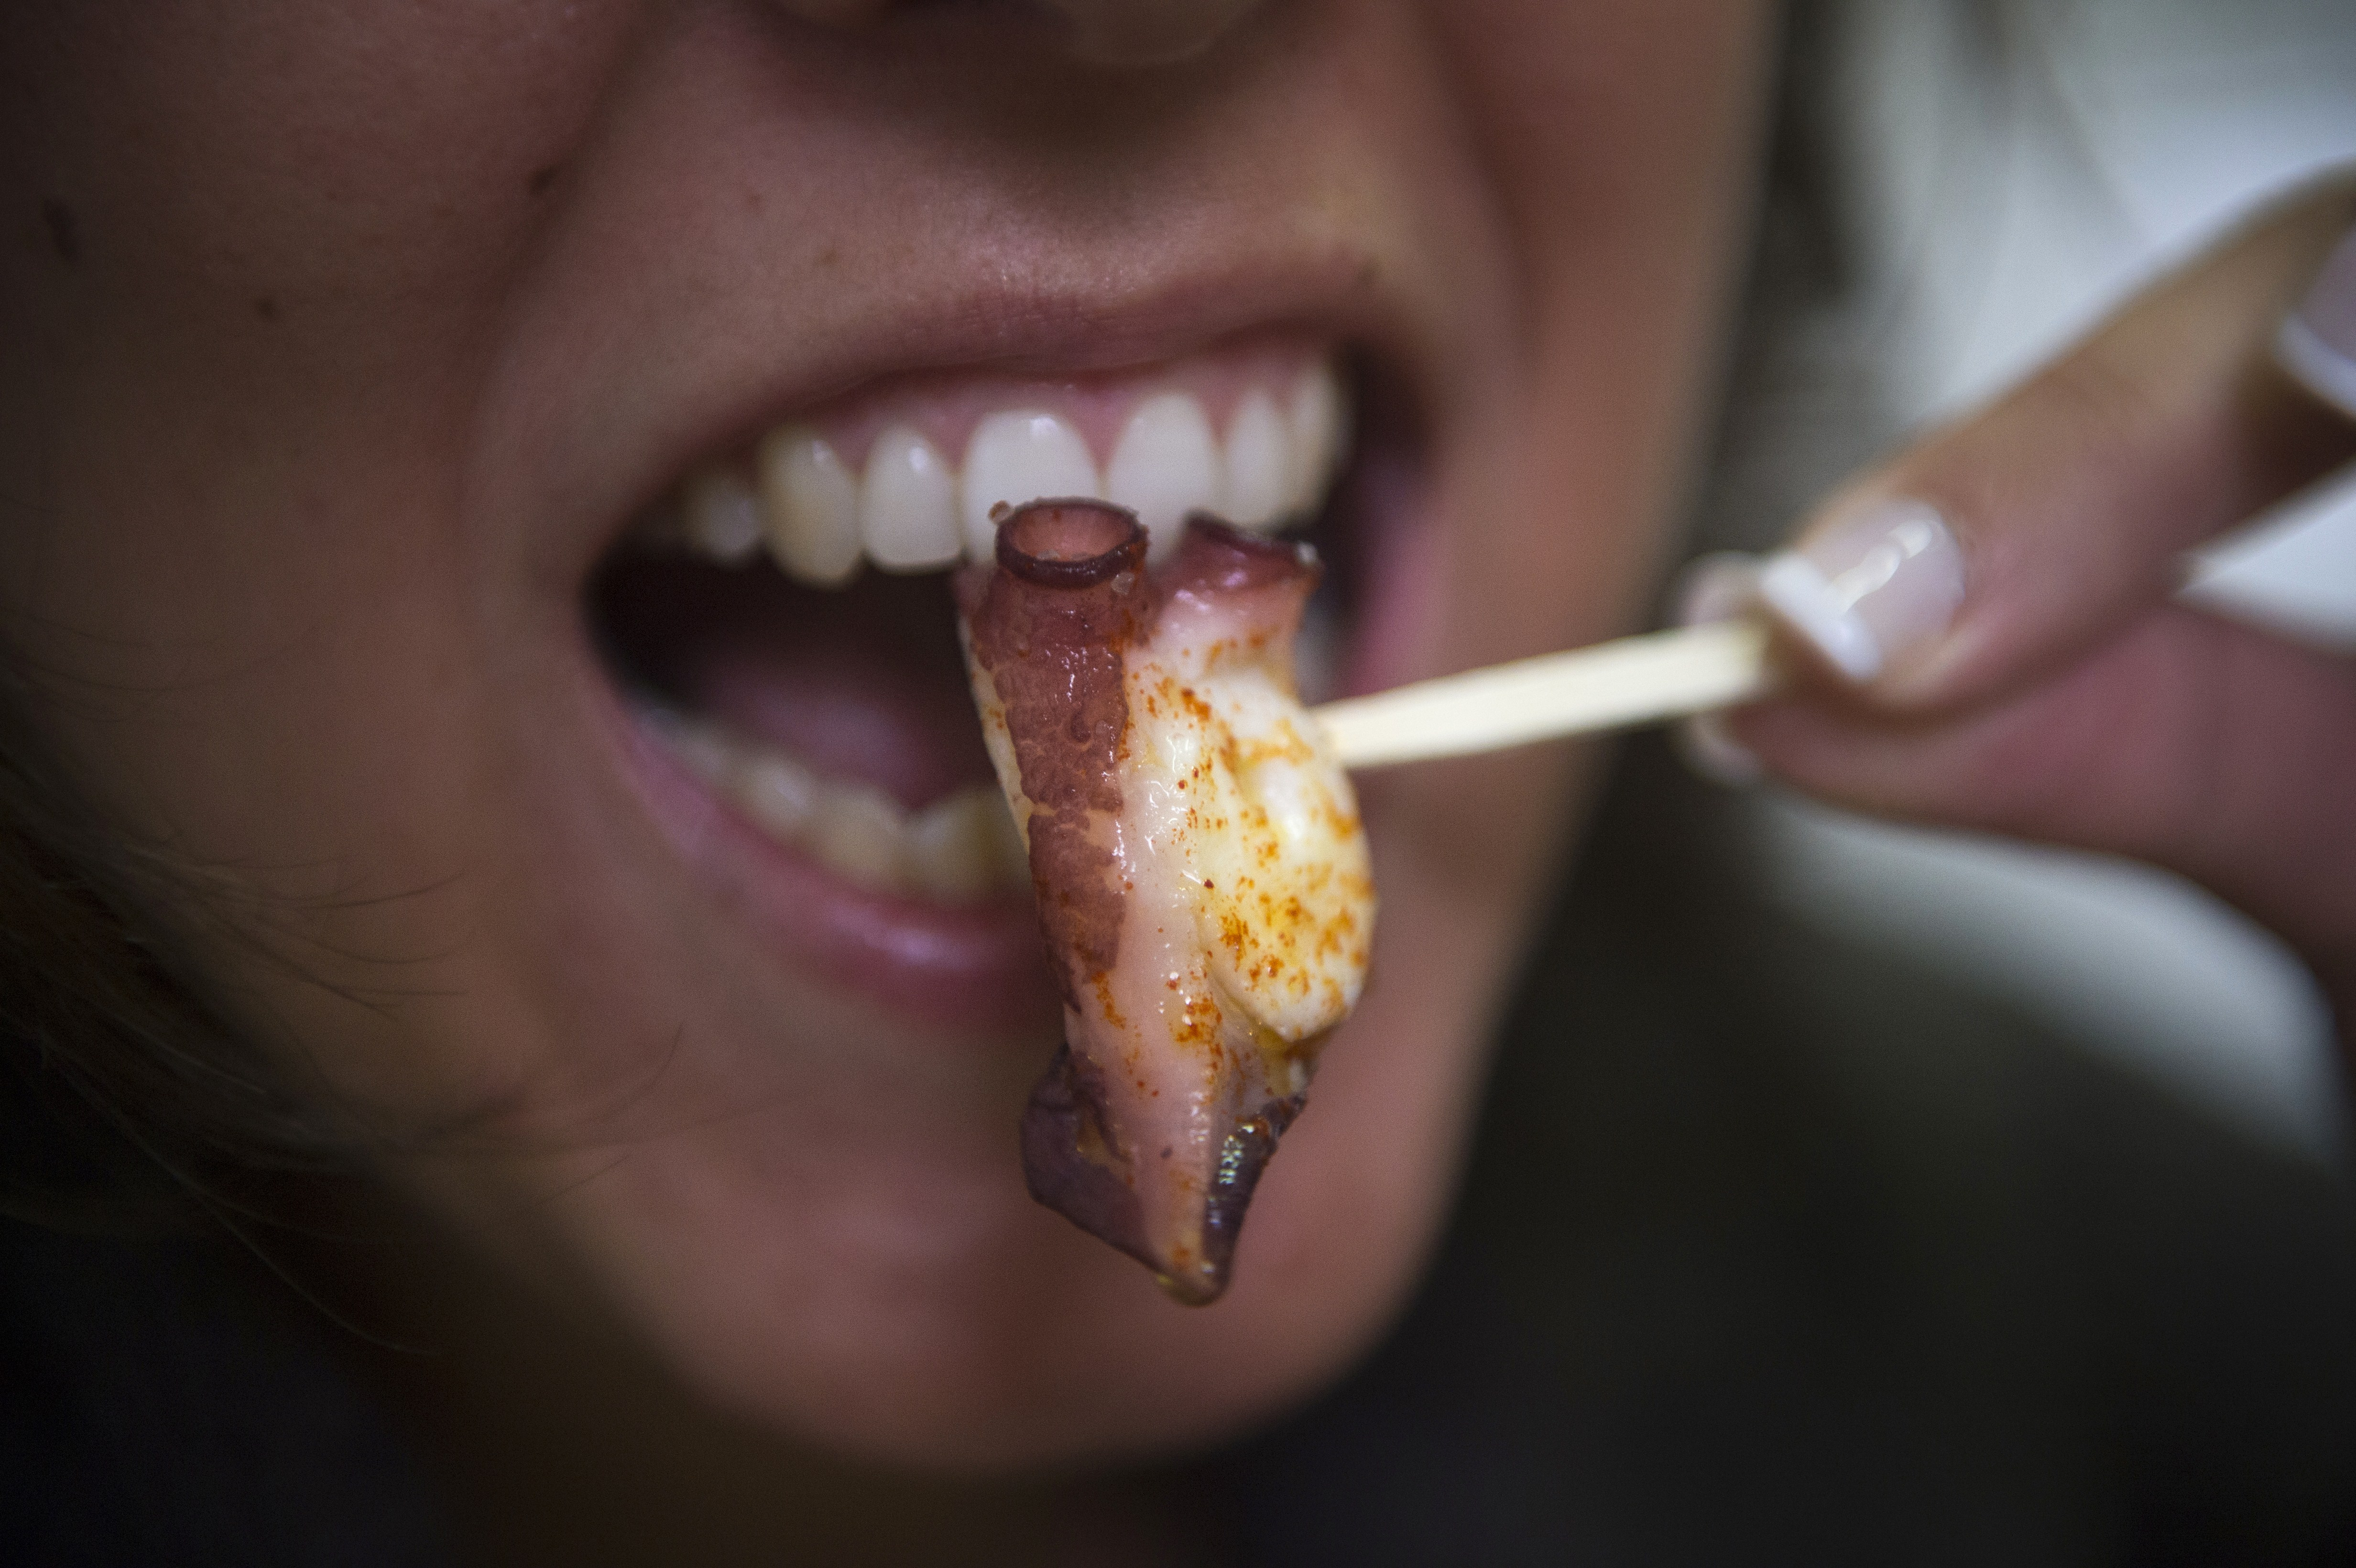 A customer eats a 'pulpo a feira' (meaning fair-style octopus in Galician), a boiled octopus dish, at the restaurant Ultreya in Palas de Rei, northern Spain on November 22, 2014. (Photo credit GEORGE SHELTON/AFP/Getty Images)